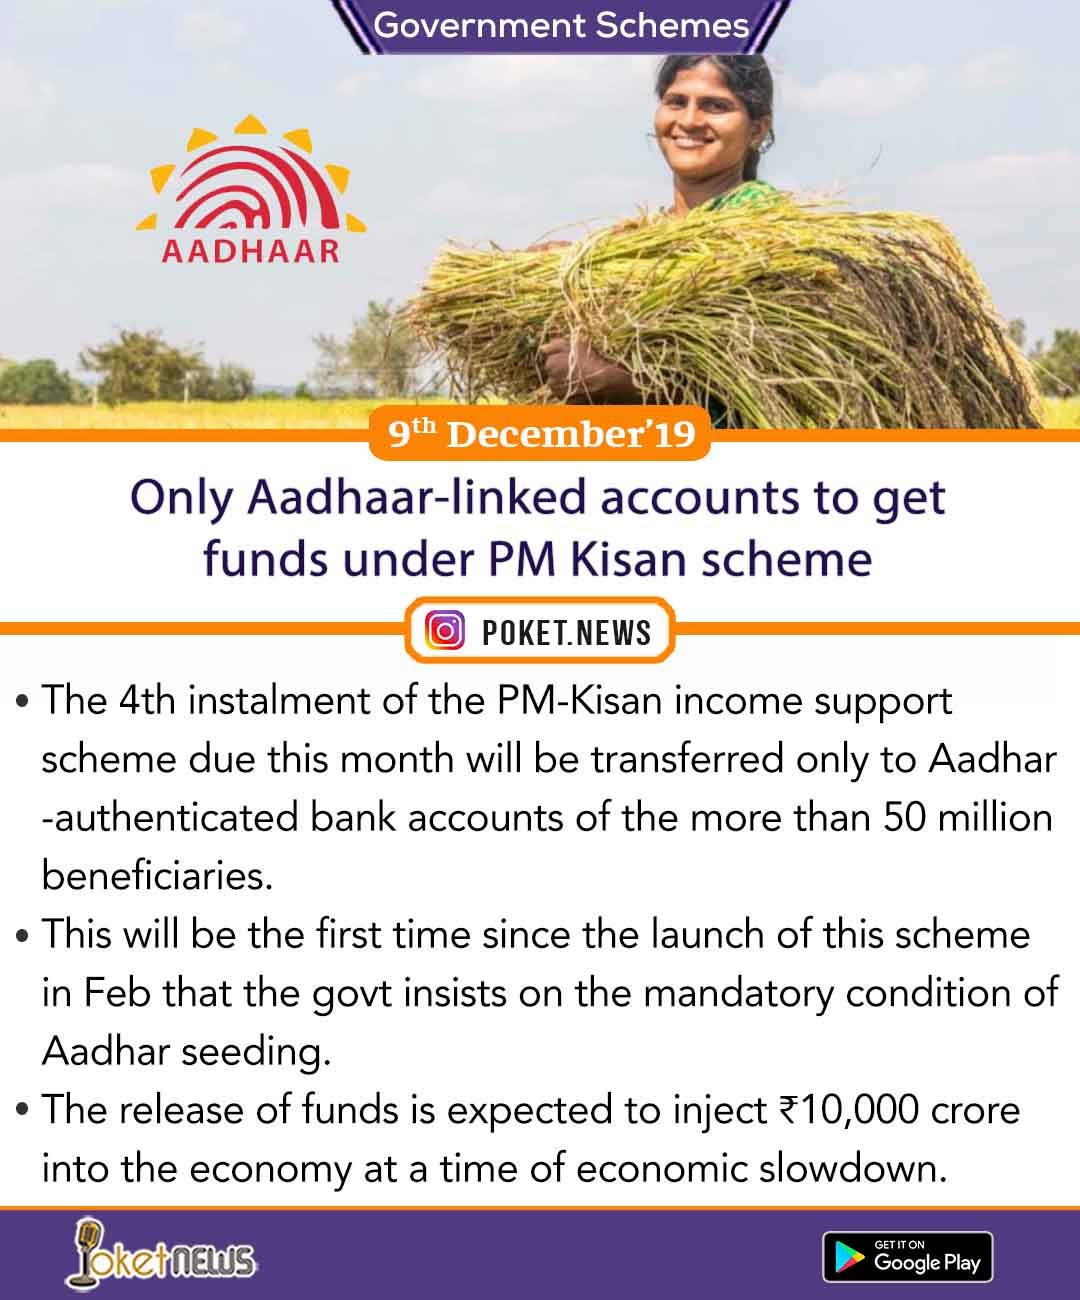 Only Aadhaar-linked accounts to get funds under PM Kisan scheme